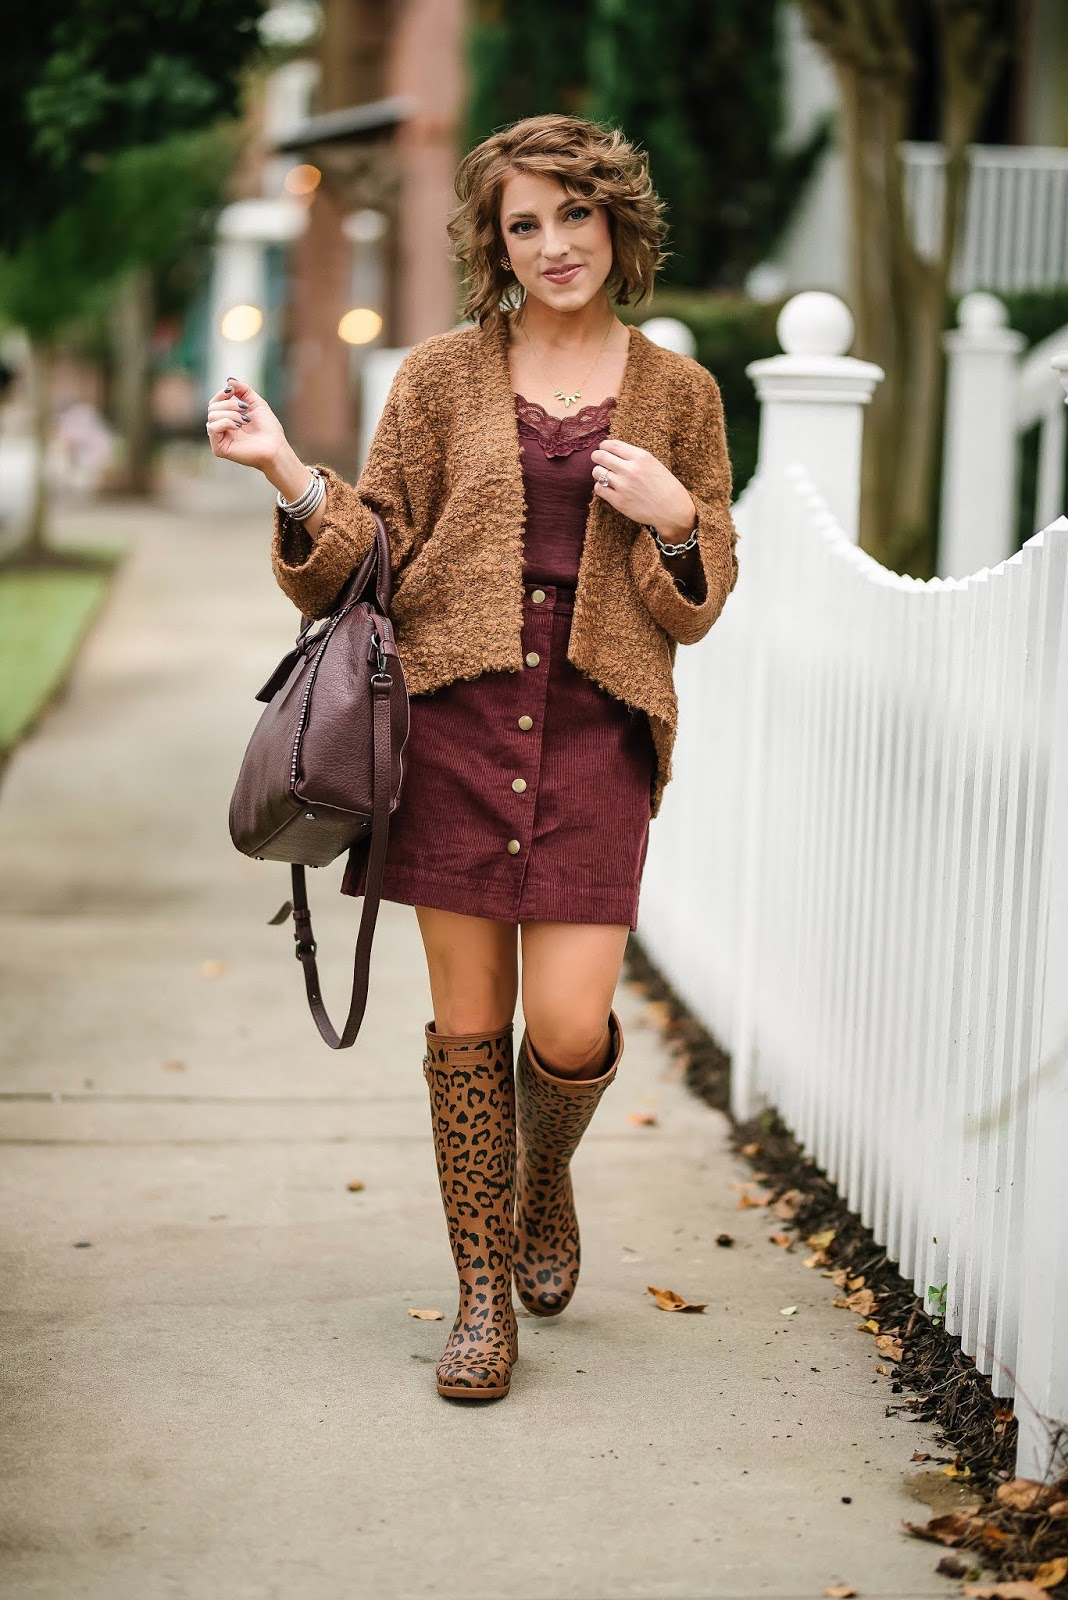 Under $30 Cord Skirt, Target Style Cardigan & Leopard Print Hunter Boots - Something Delightful Blog